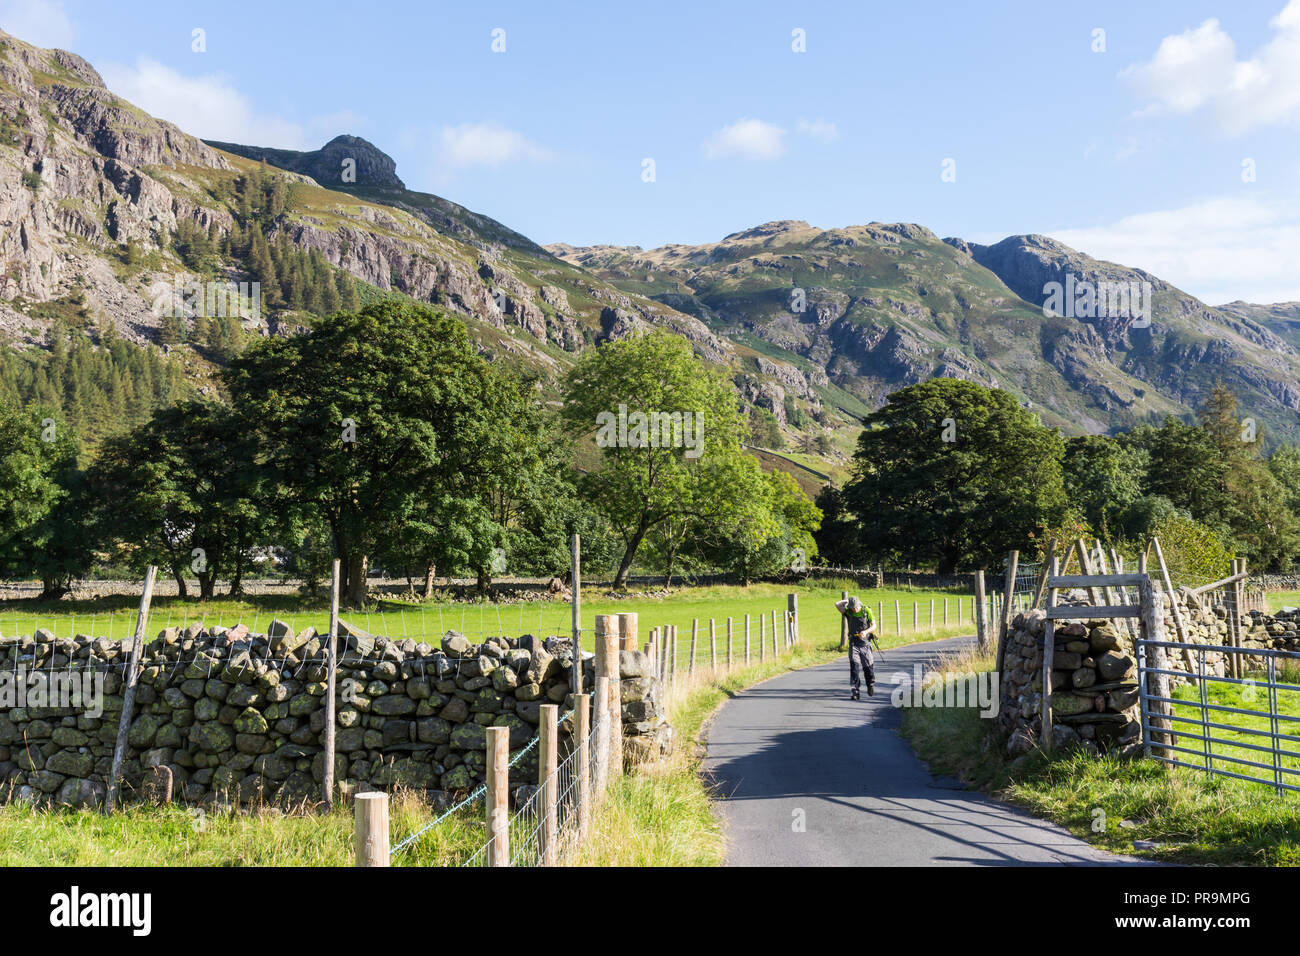 A hillwalker walking  in Great Langdale at the foot of Langdale Pikes in the Lake District, Cumbria, England. - Stock Image